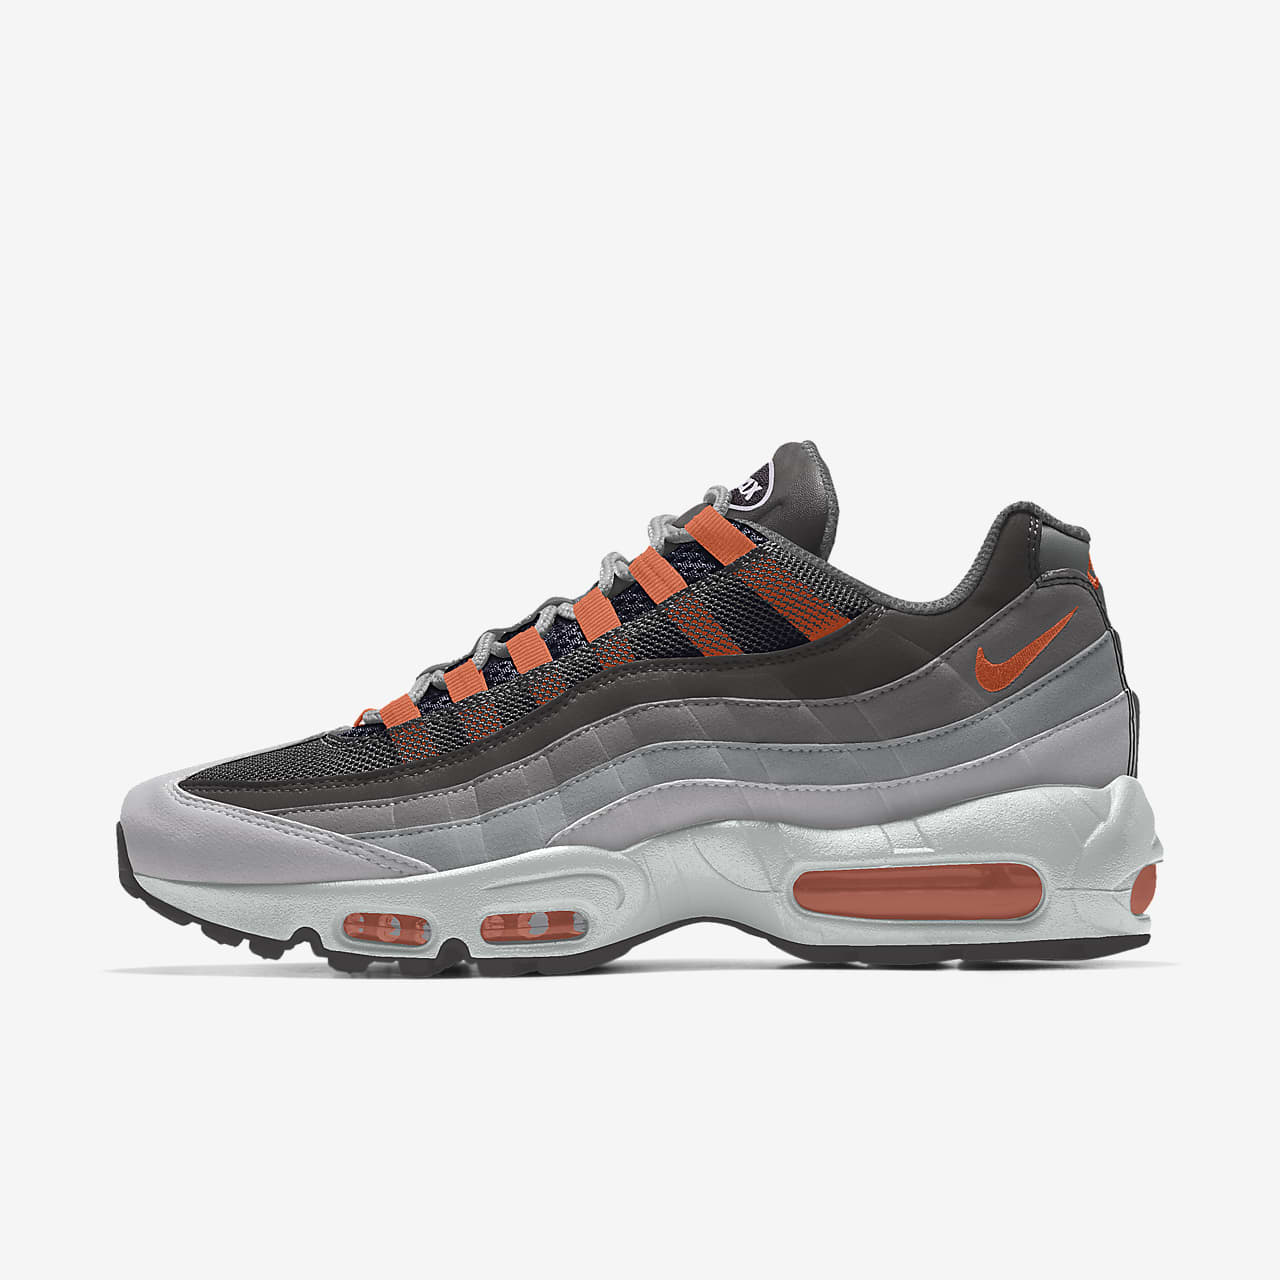 Nike Air Max 95 Unlocked By You Custom Shoe